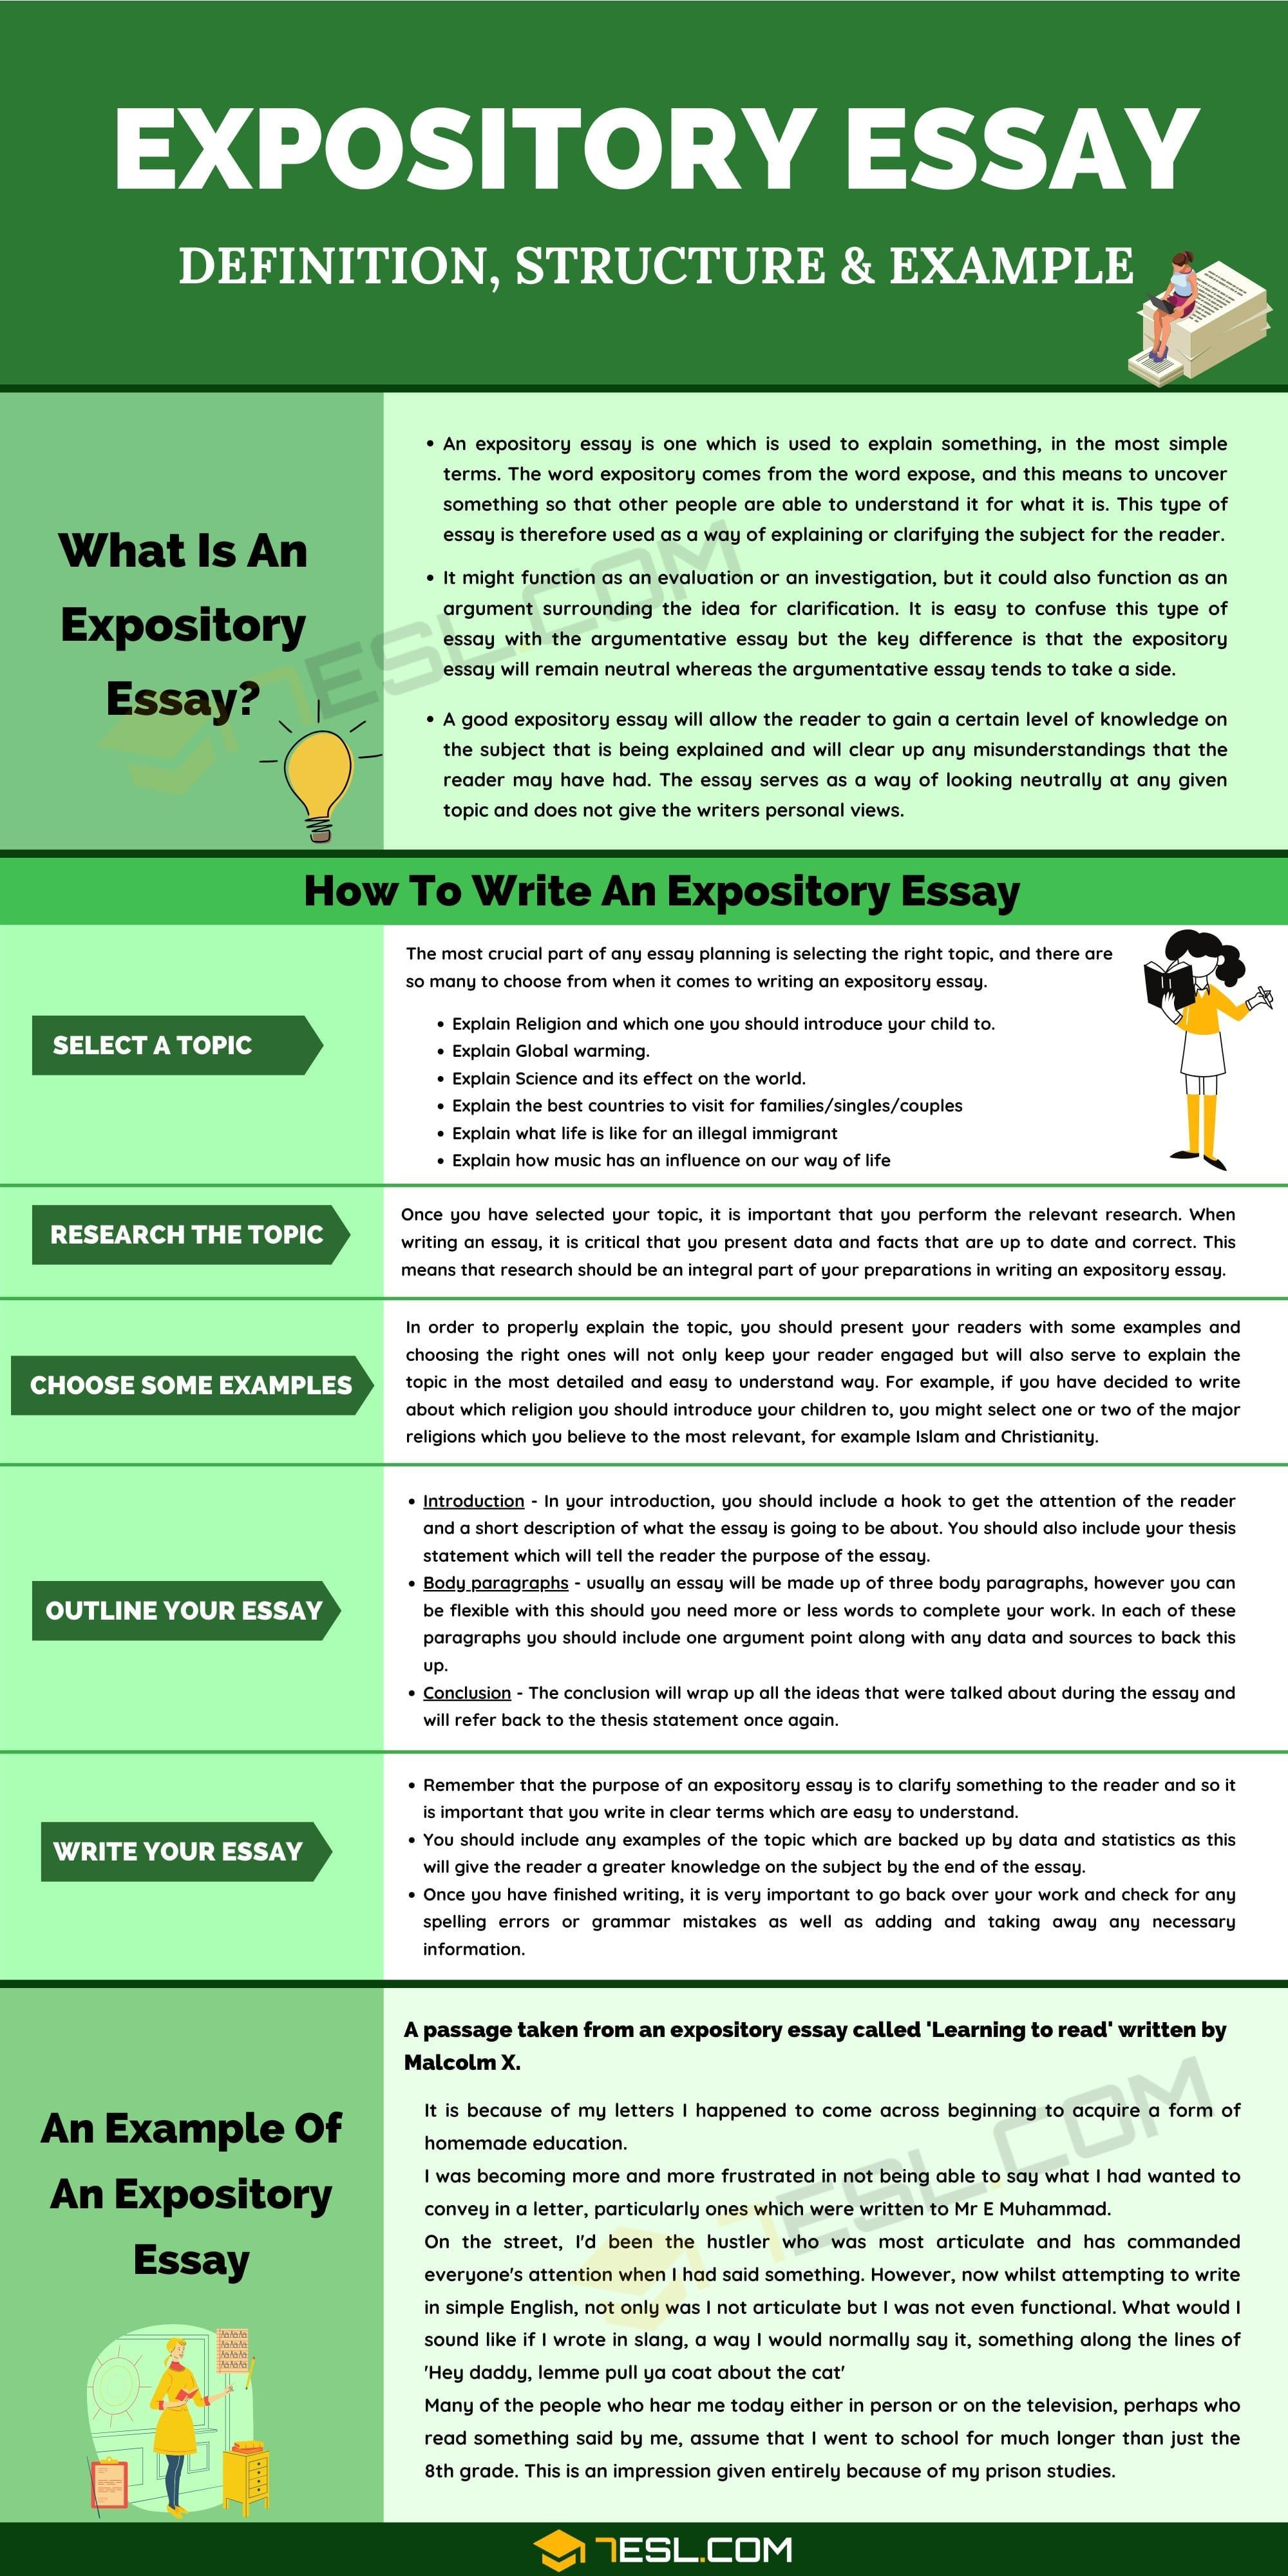 Esl thesis statement editing service for college thesis jury members